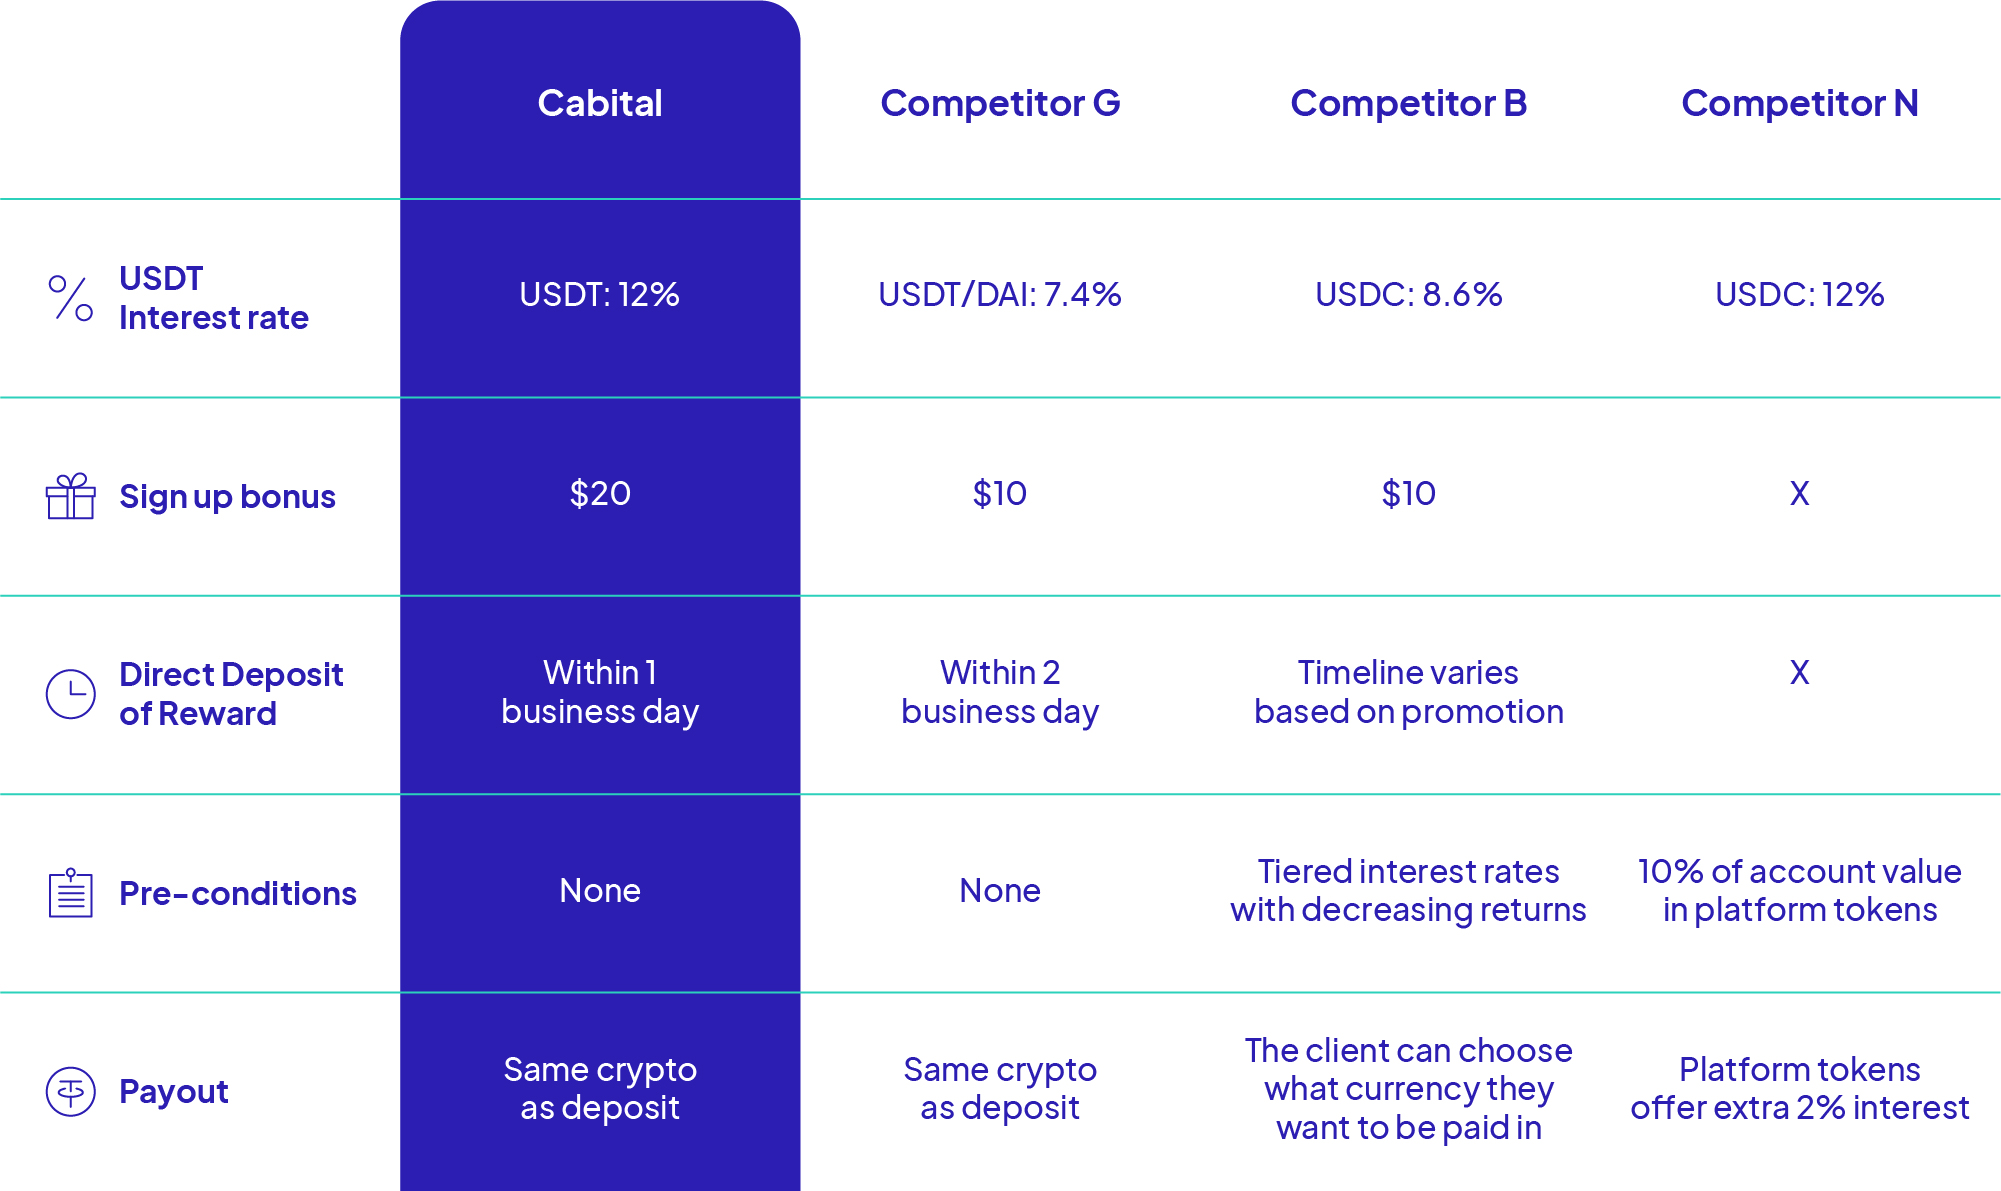 Comparison chart between Cabital and other competitor in interest rate, sign up bonus, direct deposit of reward, pre-conditions, and payout